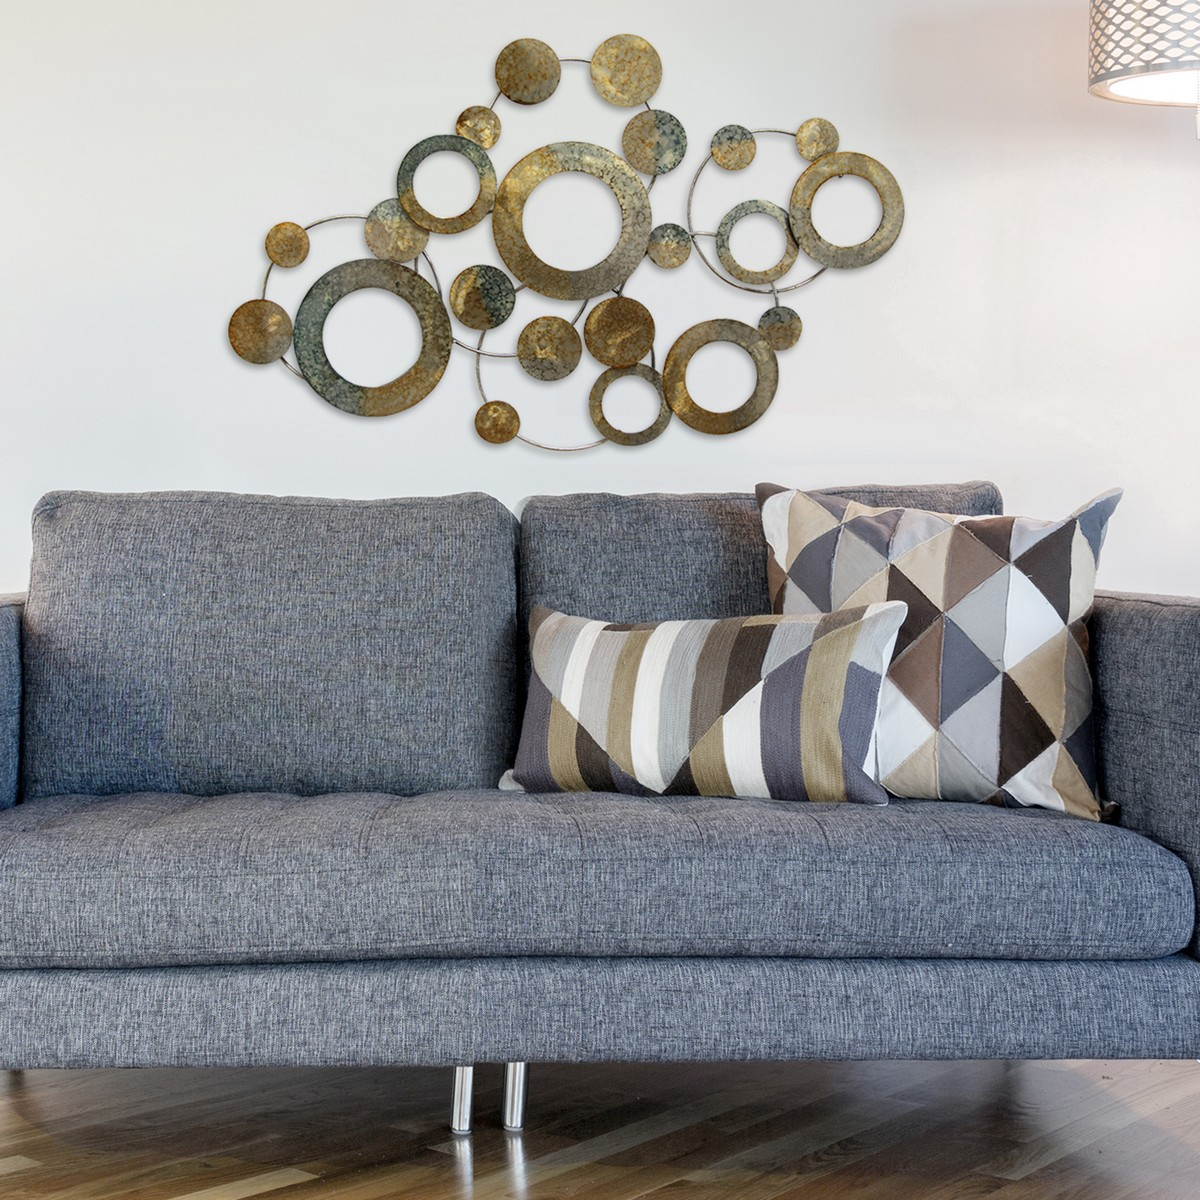 stratton home decor metal metallic circles wall decor - multi